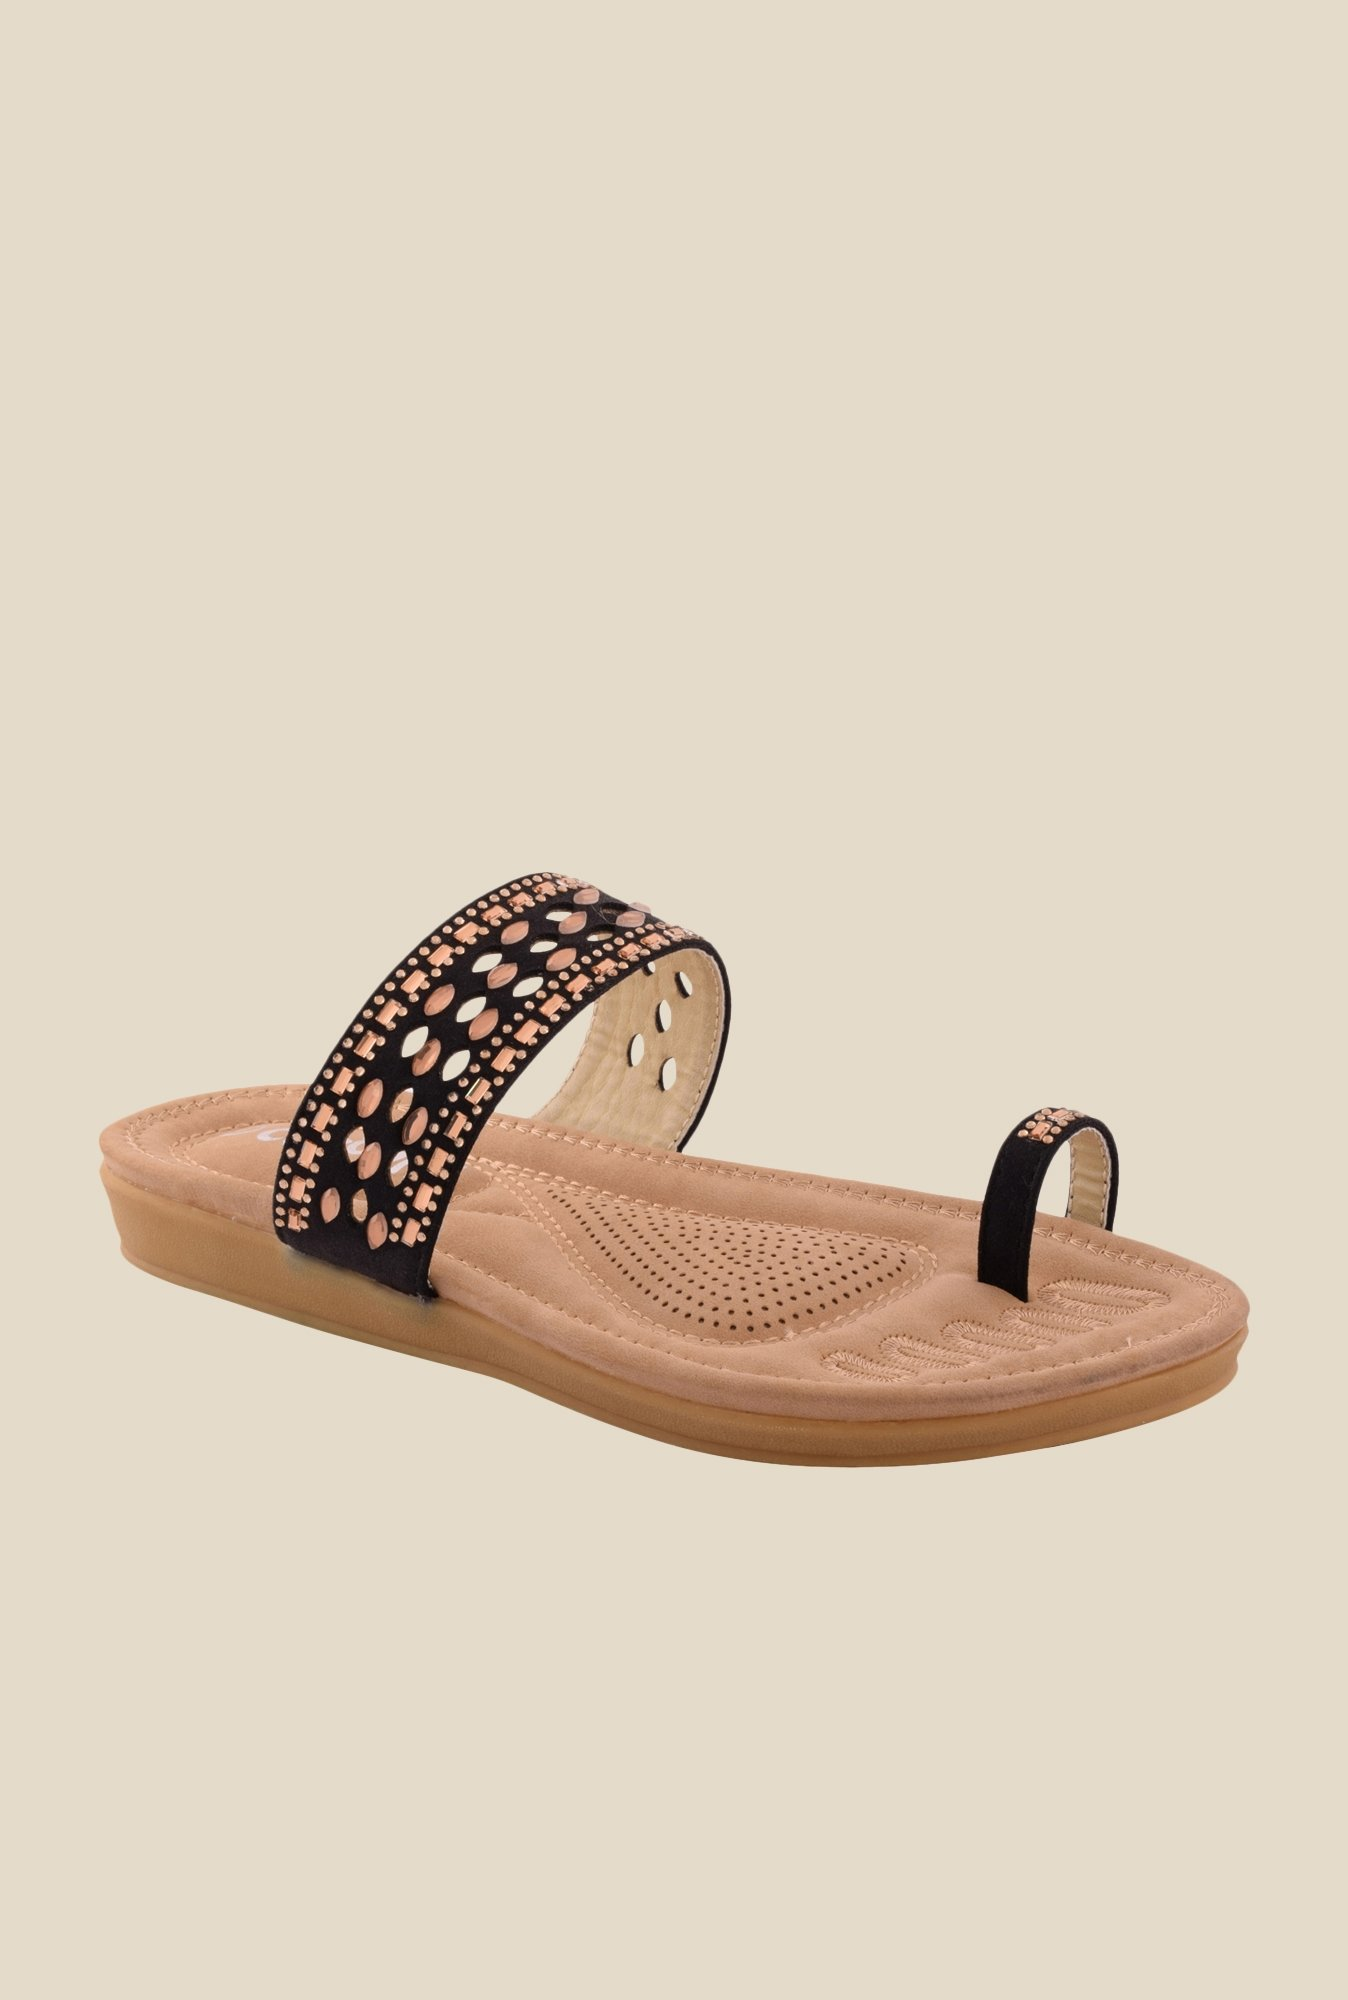 Cocoon Black Toe Ring Sandals